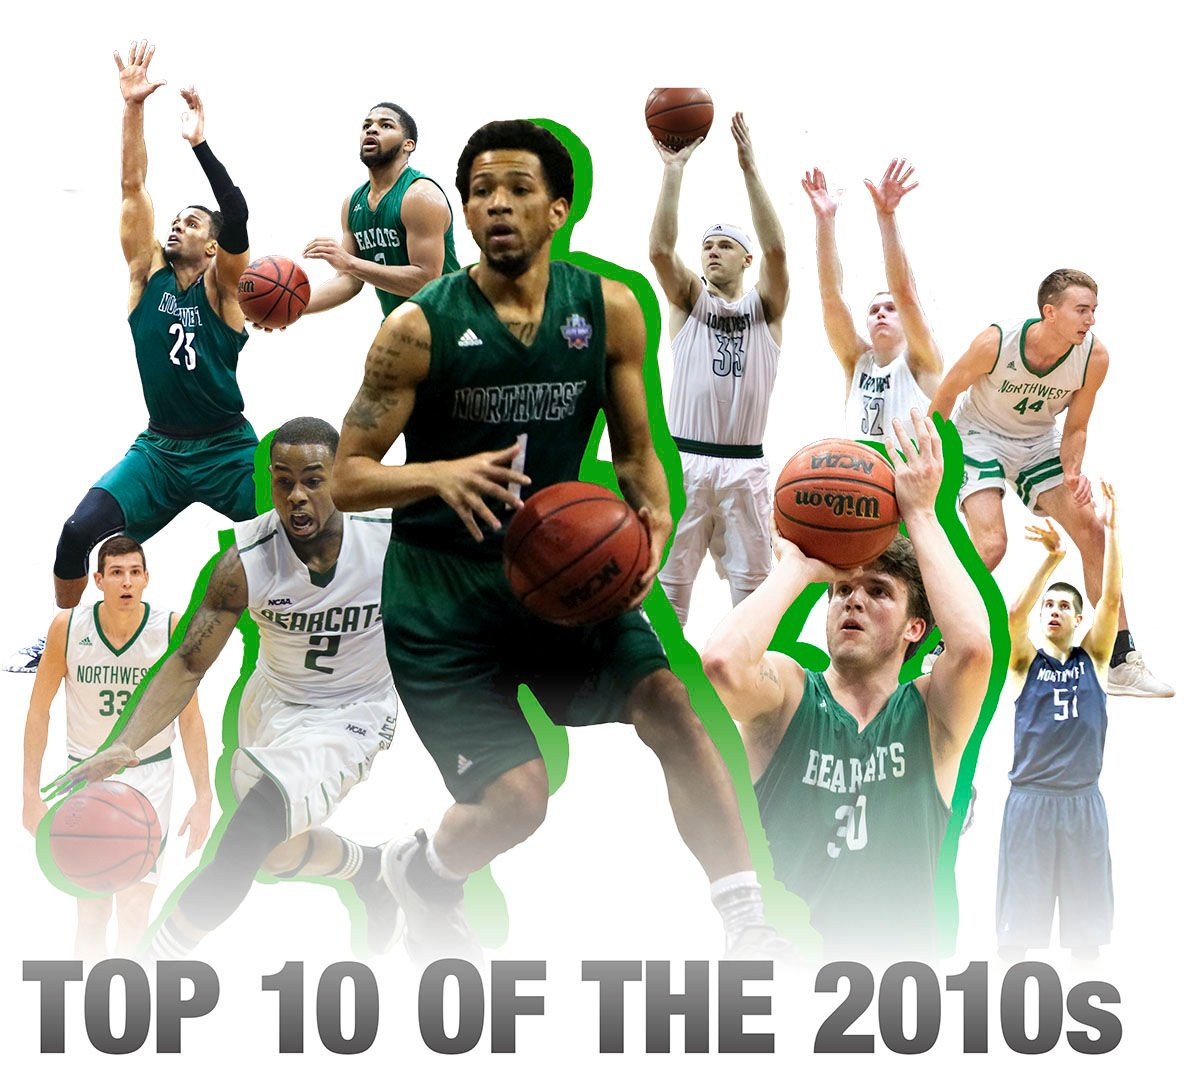 Ranking the most accomplished Northwest basketball players of the last decade